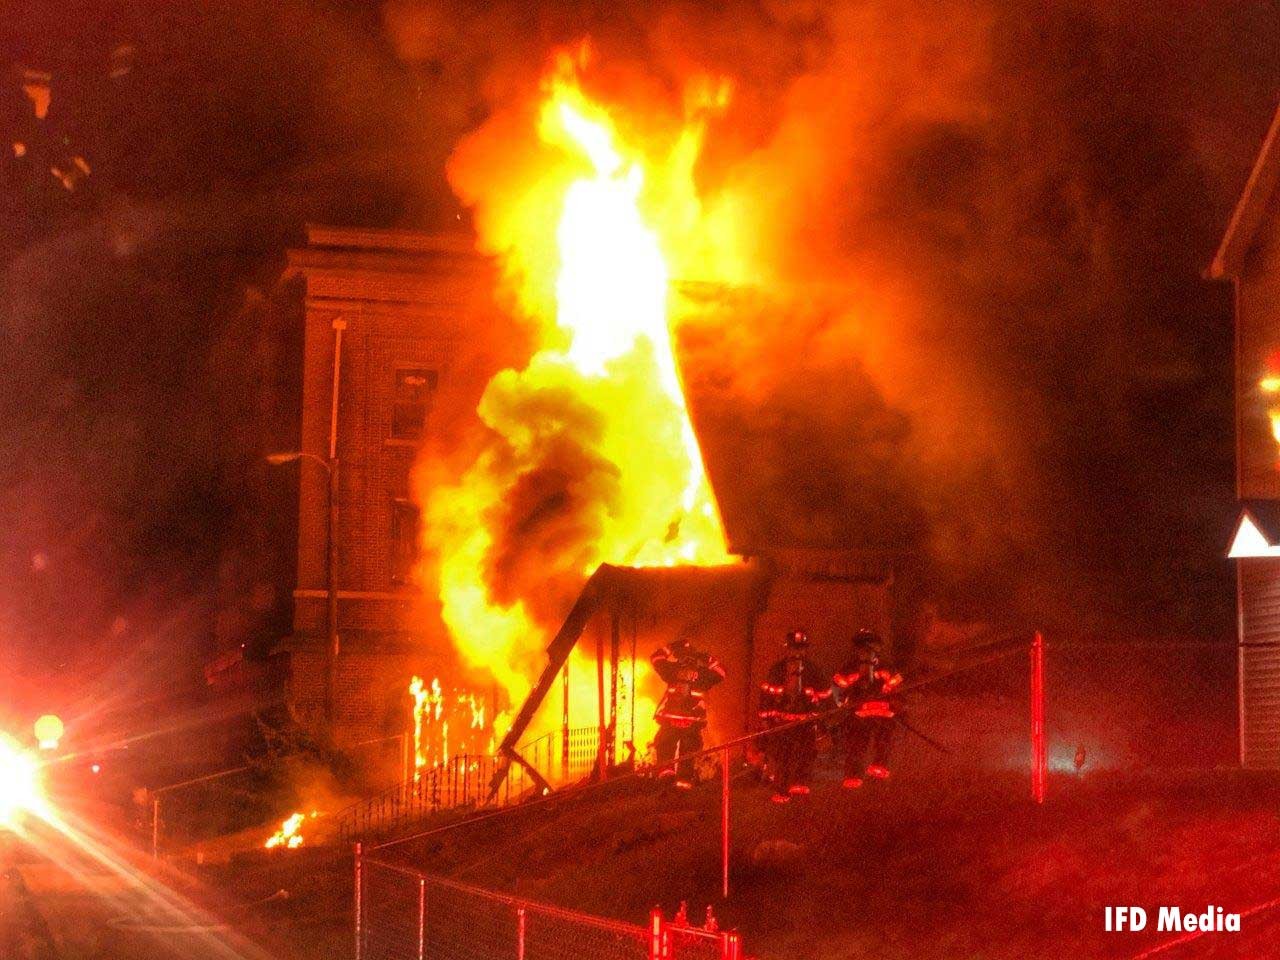 Flames tear through a building in Indianapolis